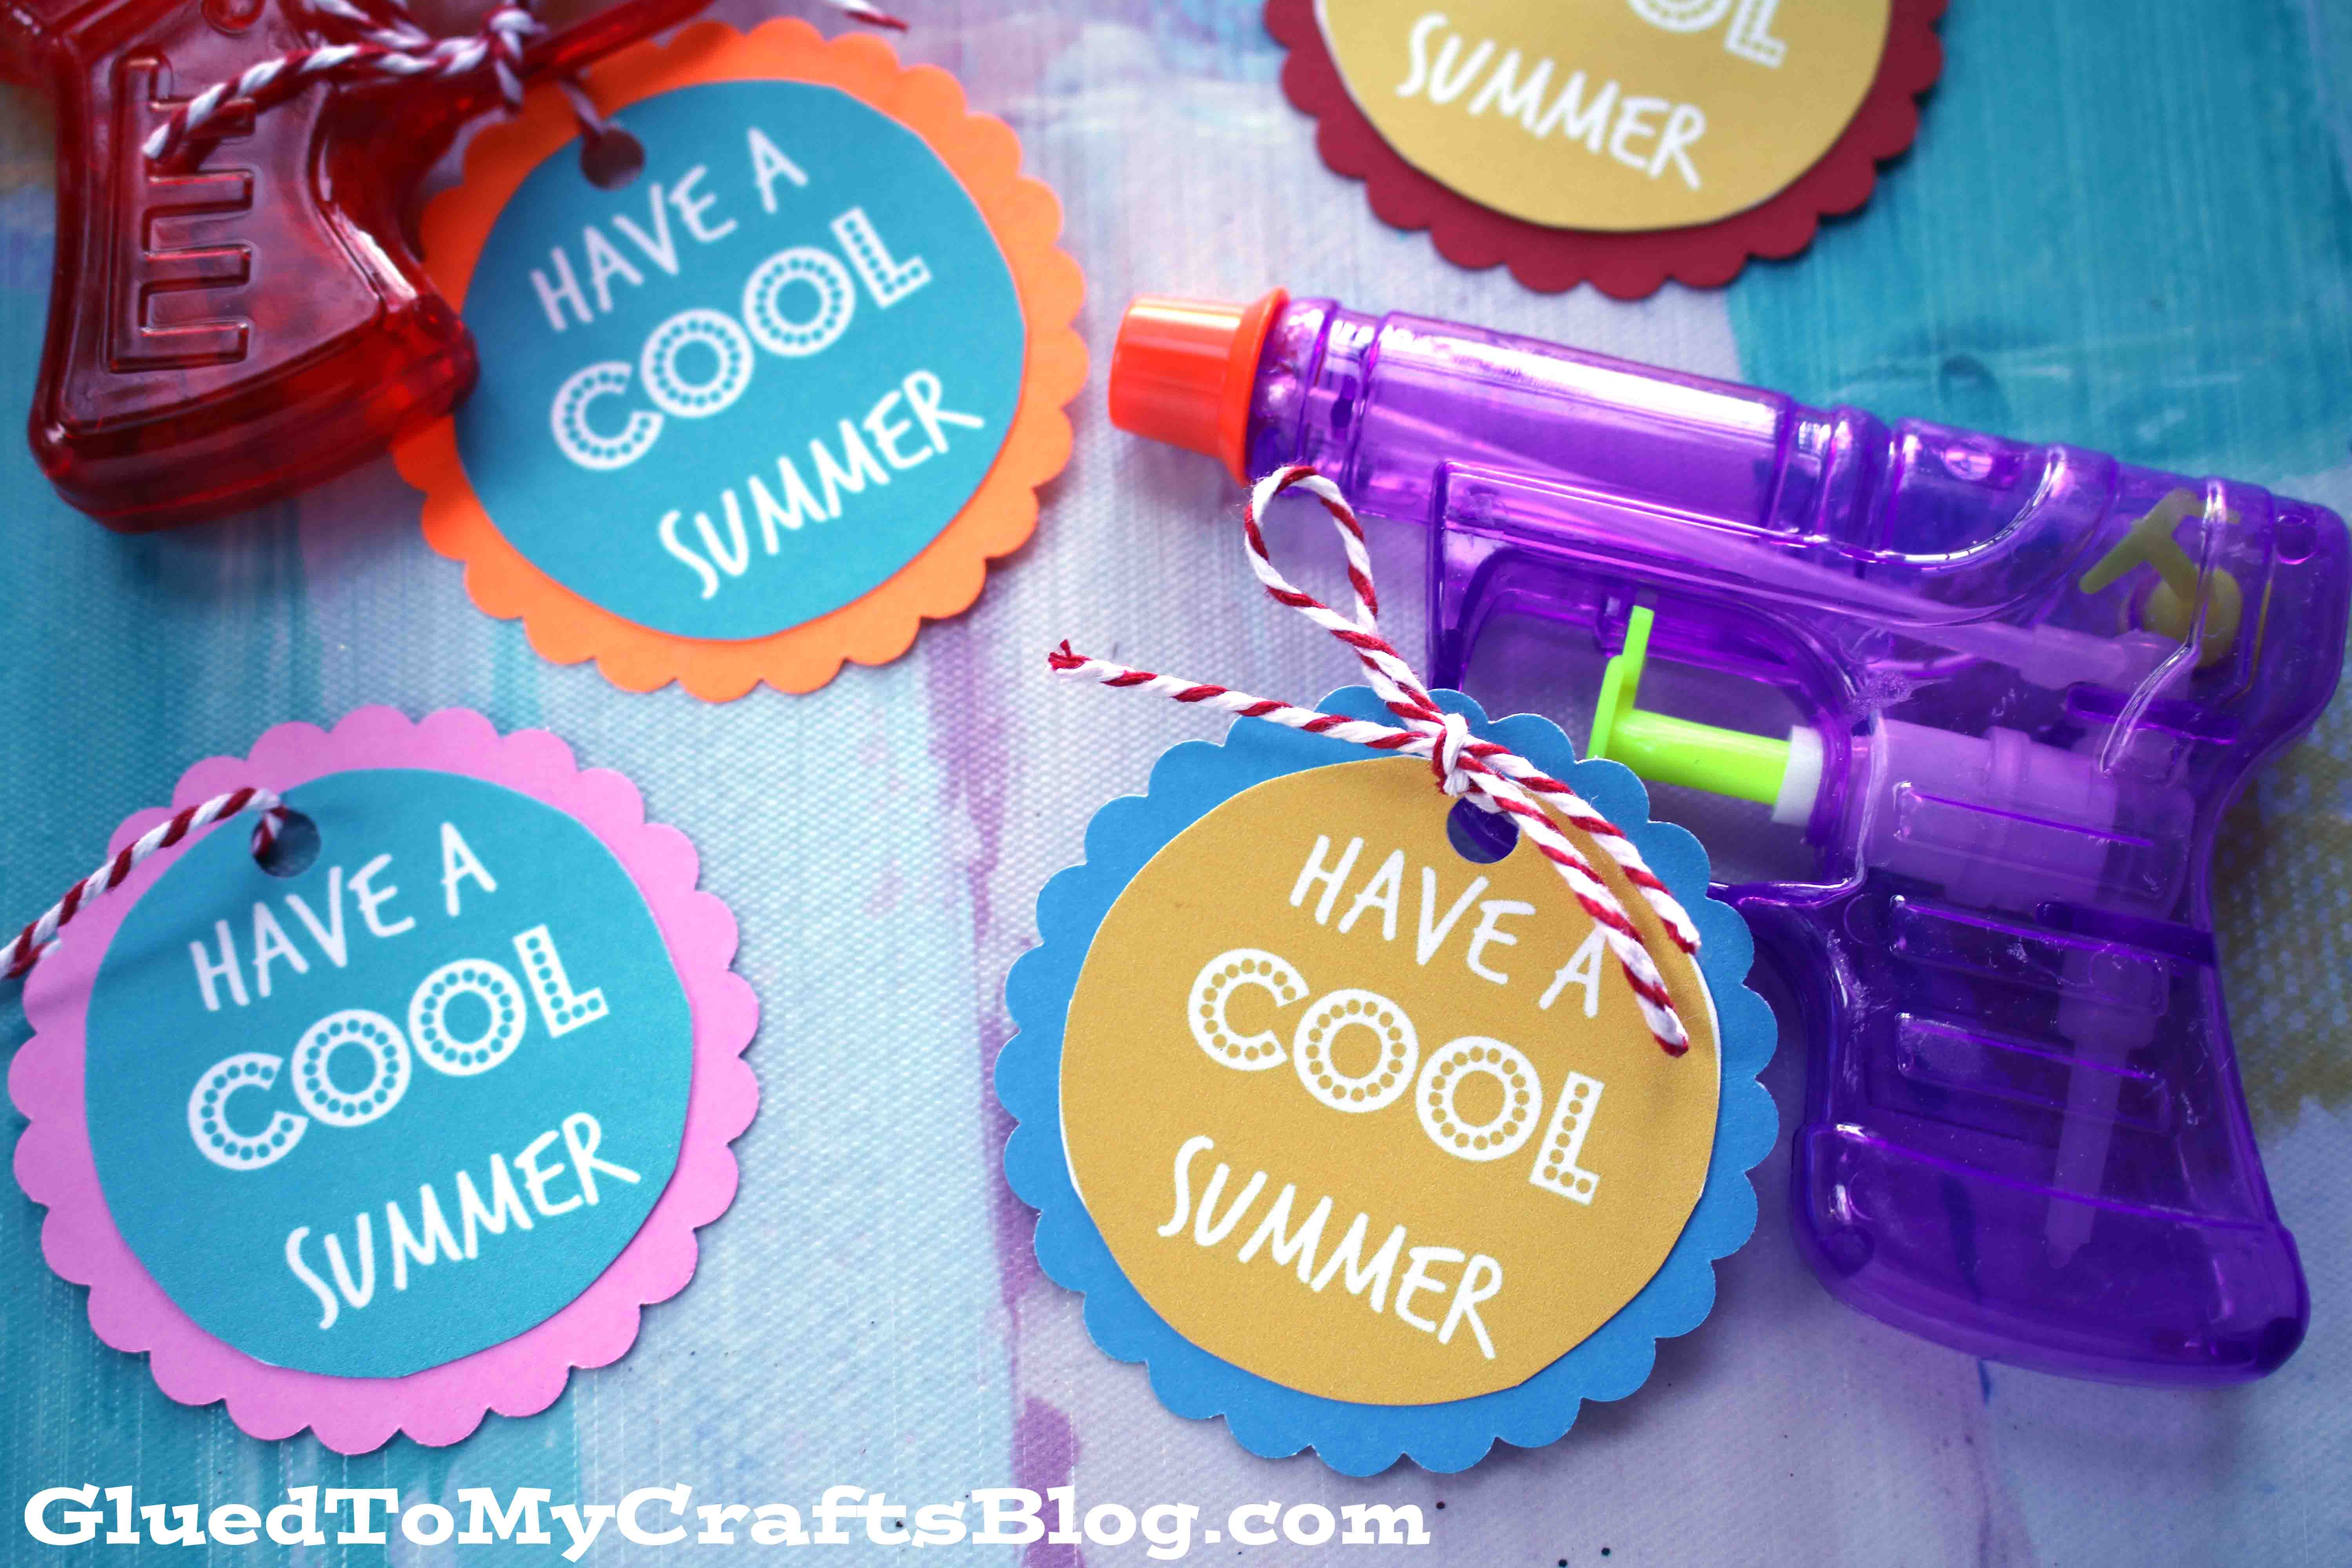 photo relating to Have a Cool Summer Printable identify Summertime Squirt Gun Tags Absolutely free Printable